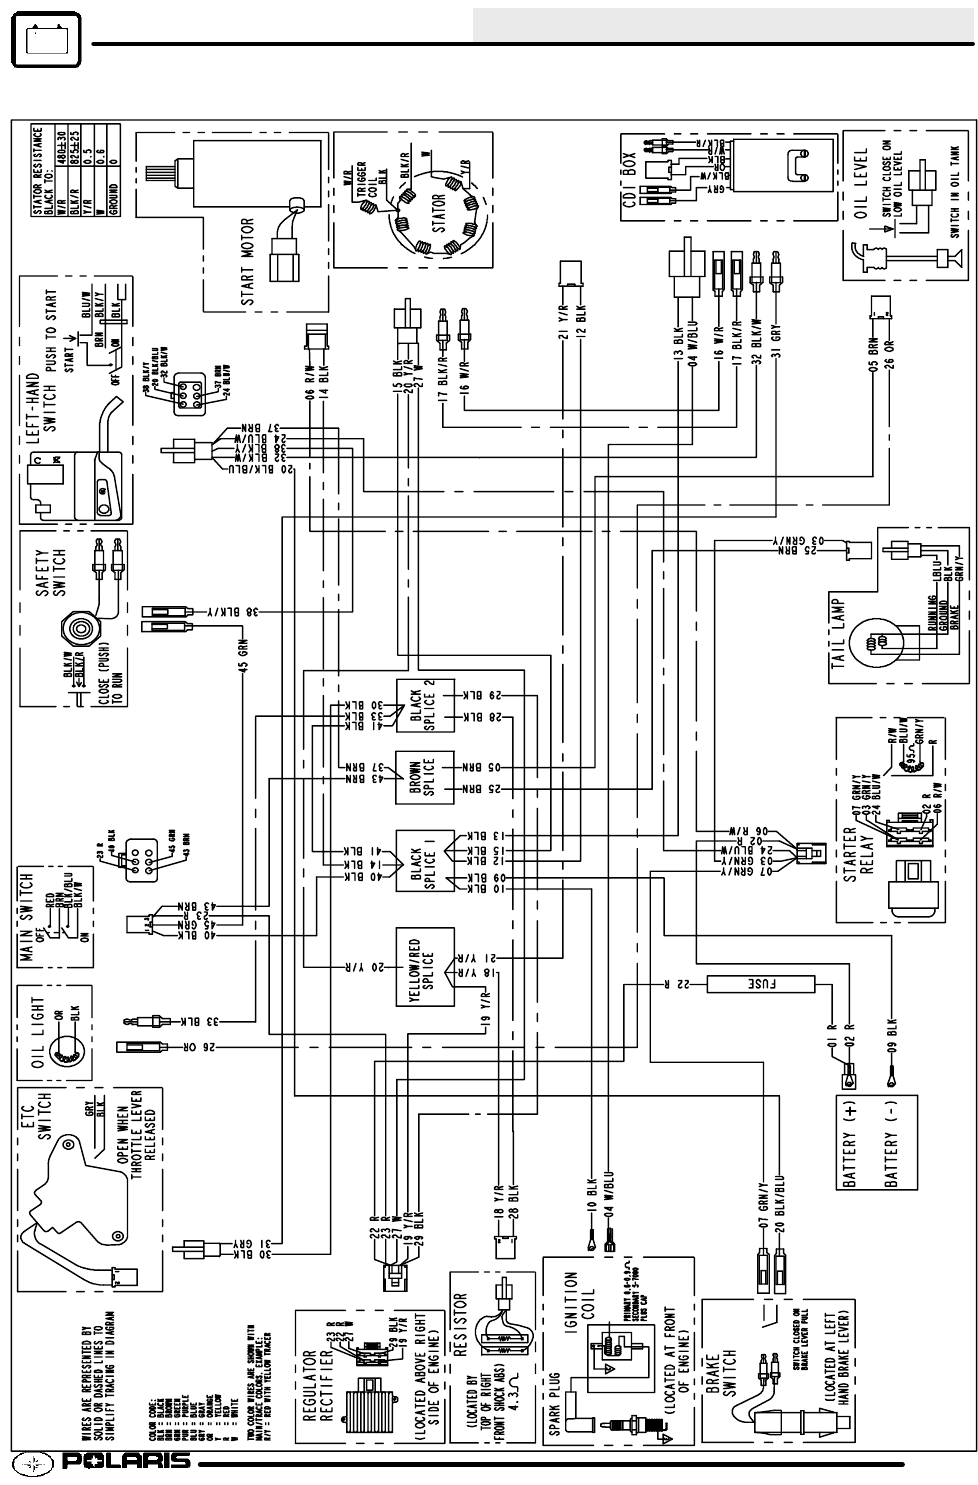 polaris sportsman 500 wiring diagram 2001 polaris sportsman 90 wiring diagram - somurich.com 2010 polaris sportsman 500 wiring diagram